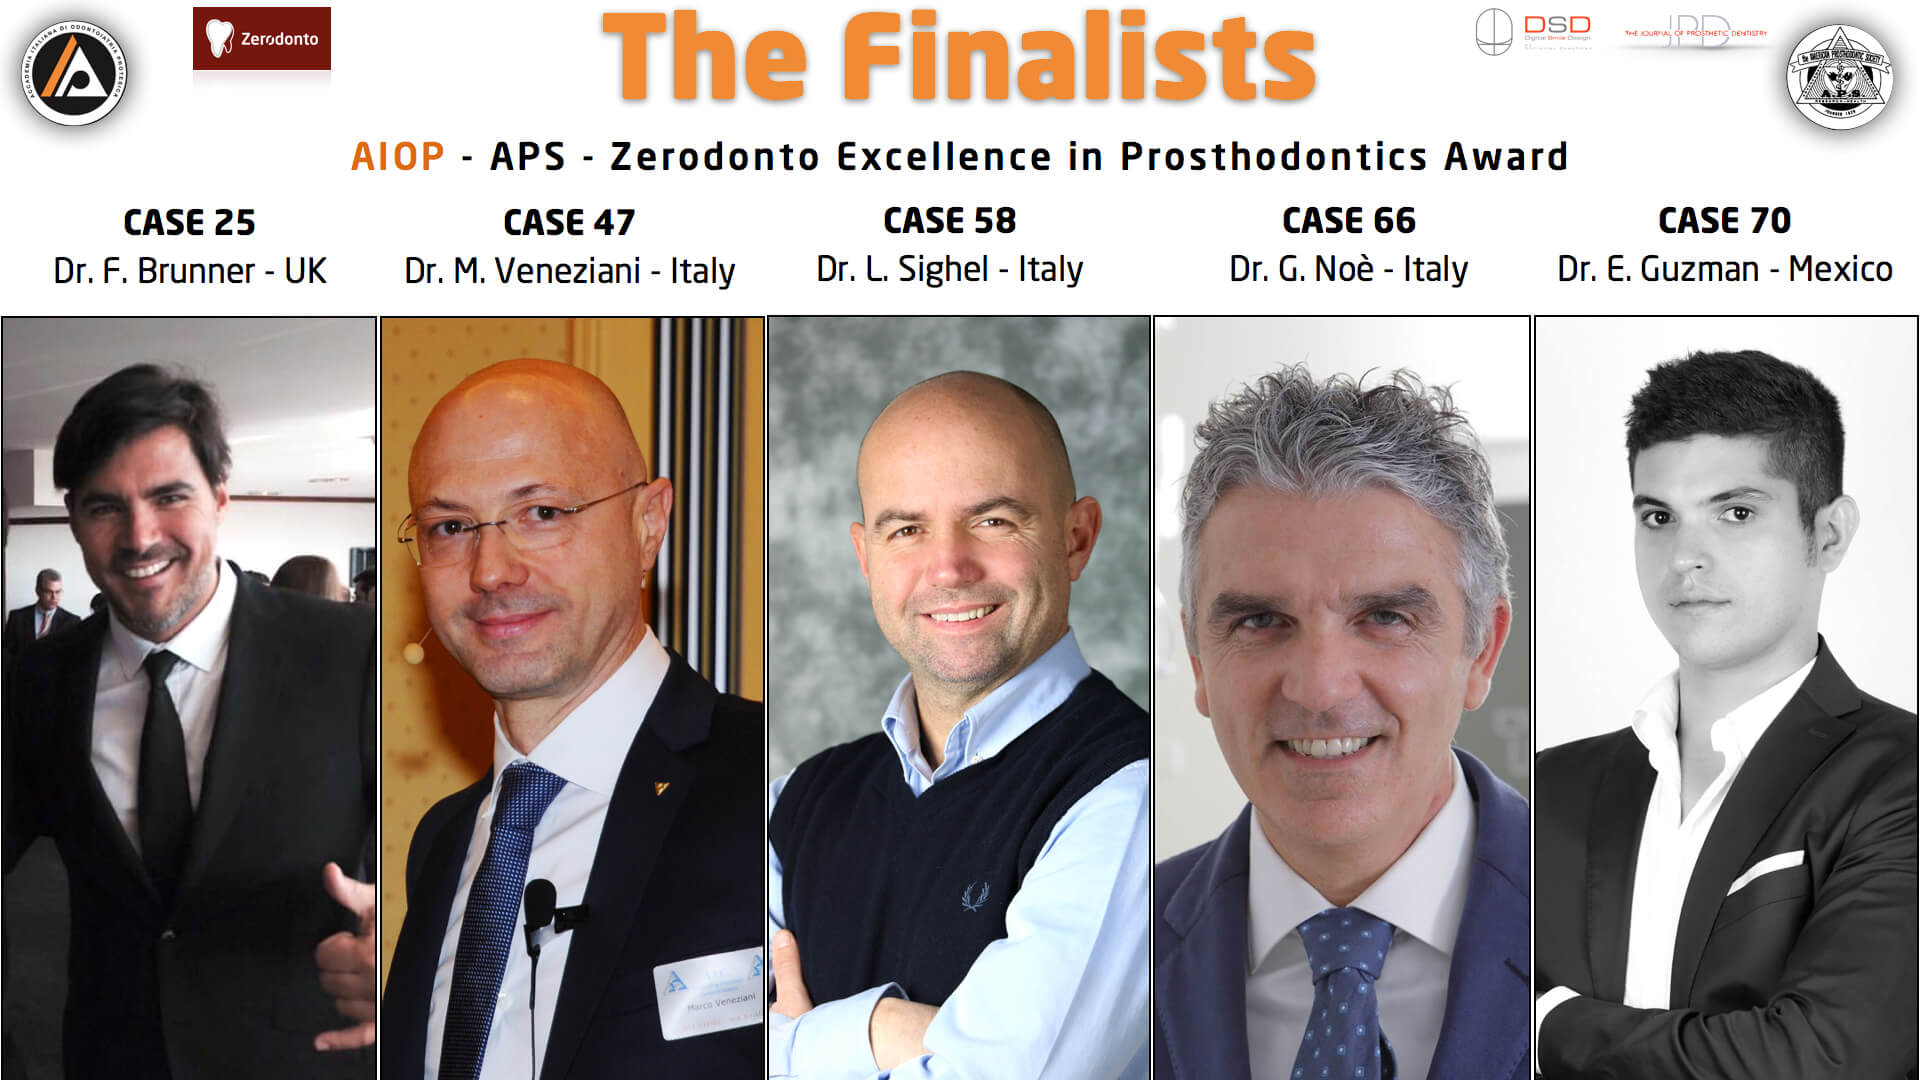 The FINALISTS of the Excellence in Prosthodontics Award 2015!